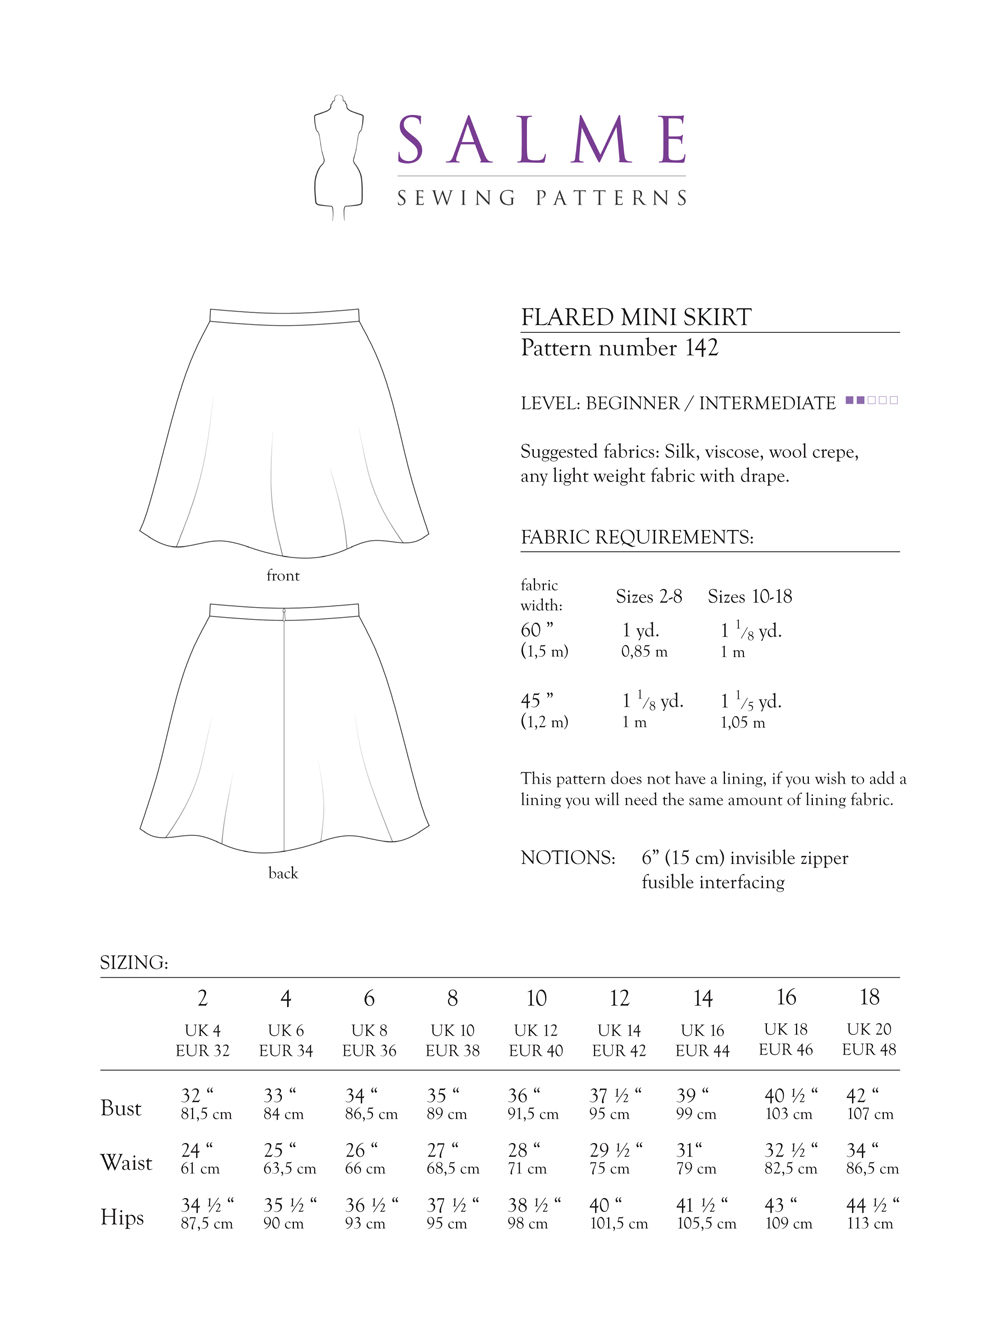 Salme Sewing Patterns 142 Flared Mini Skirt Downloadable Pattern